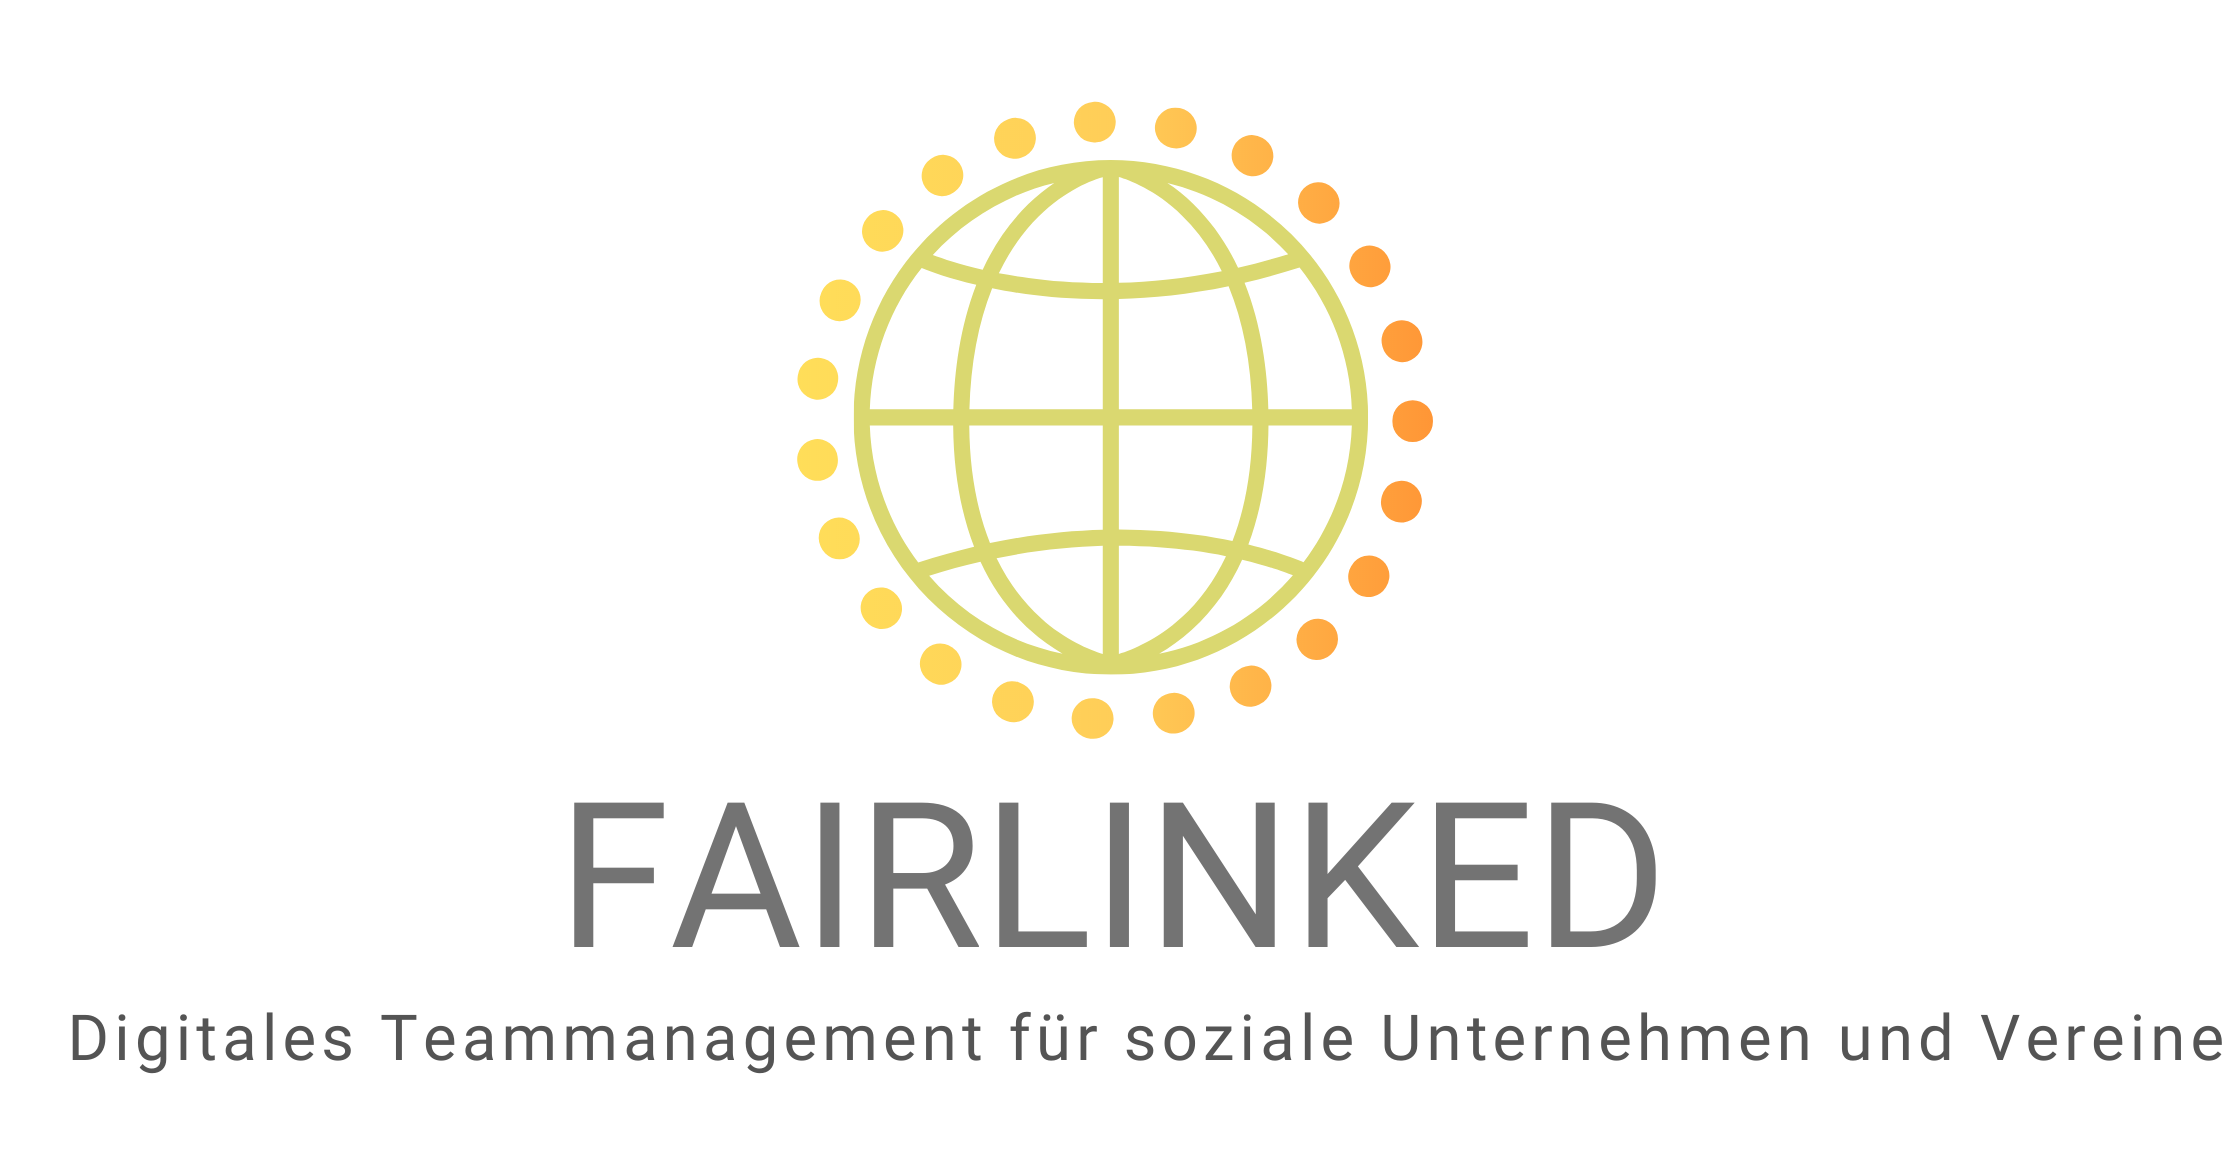 Fairlinked